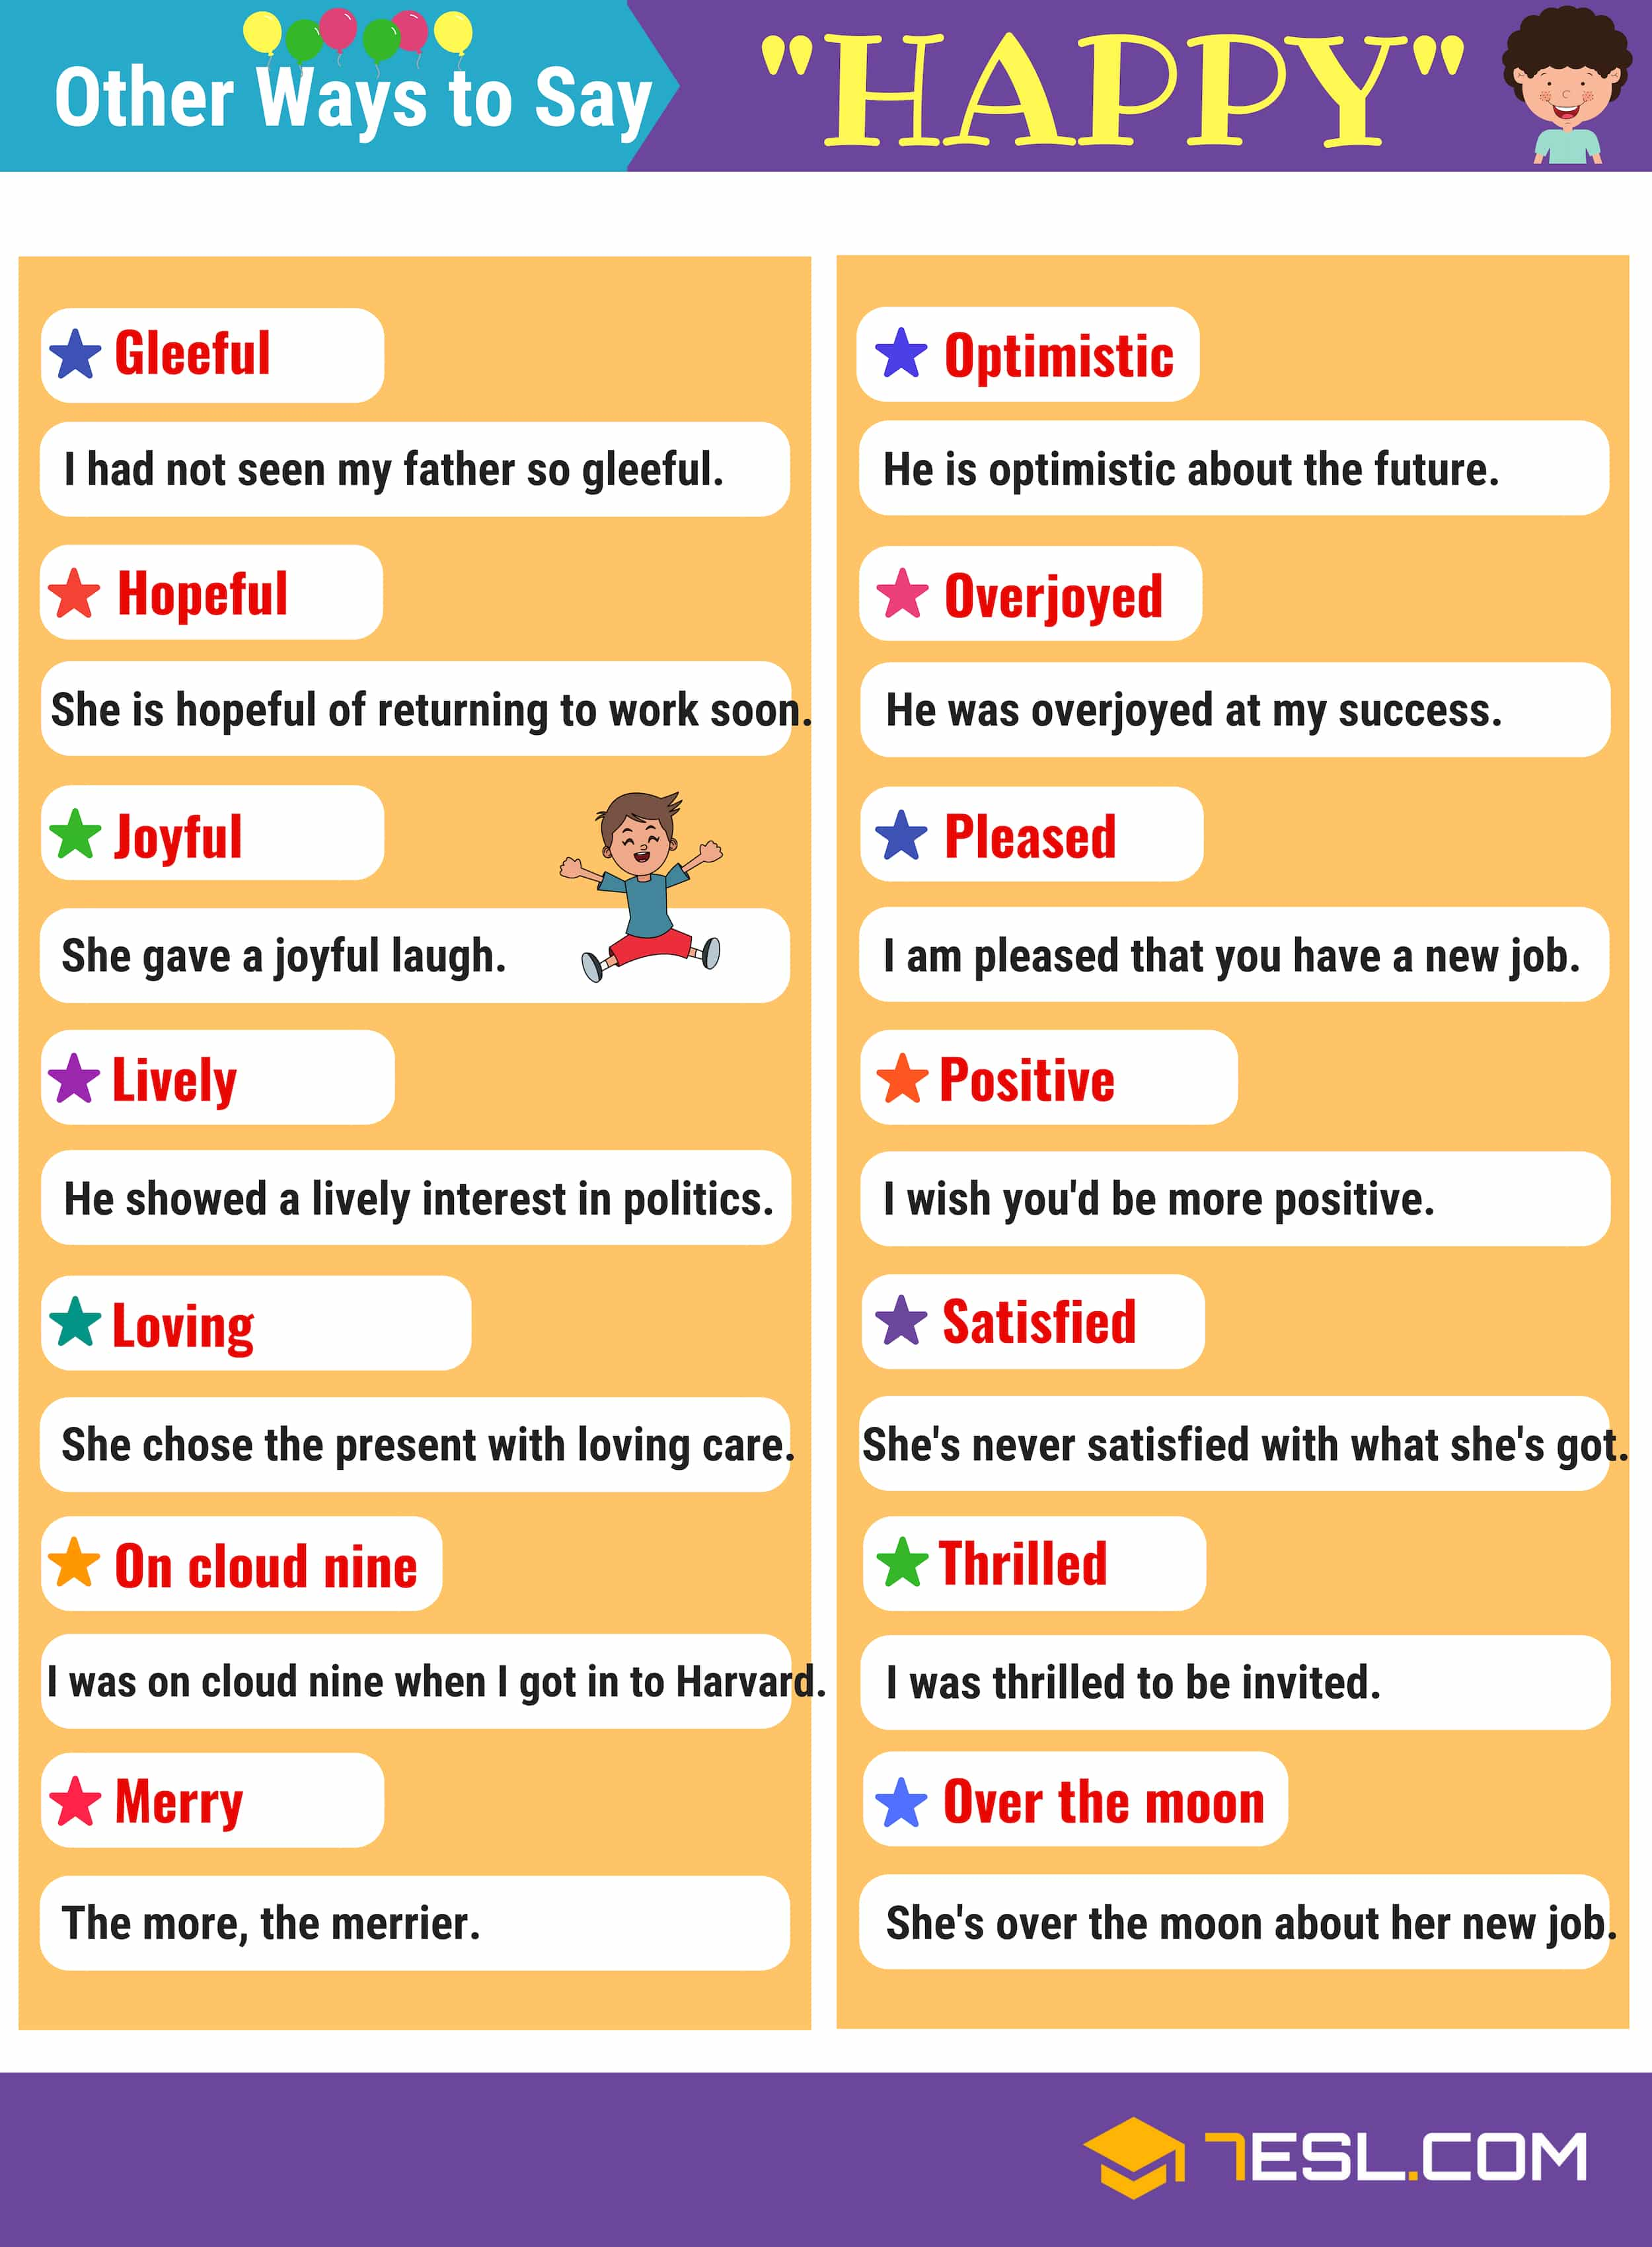 Happy Synonyms 105 Synonyms For Happy In English 7esl Found 6 synonyms in 1 groups. happy synonyms 105 synonyms for happy